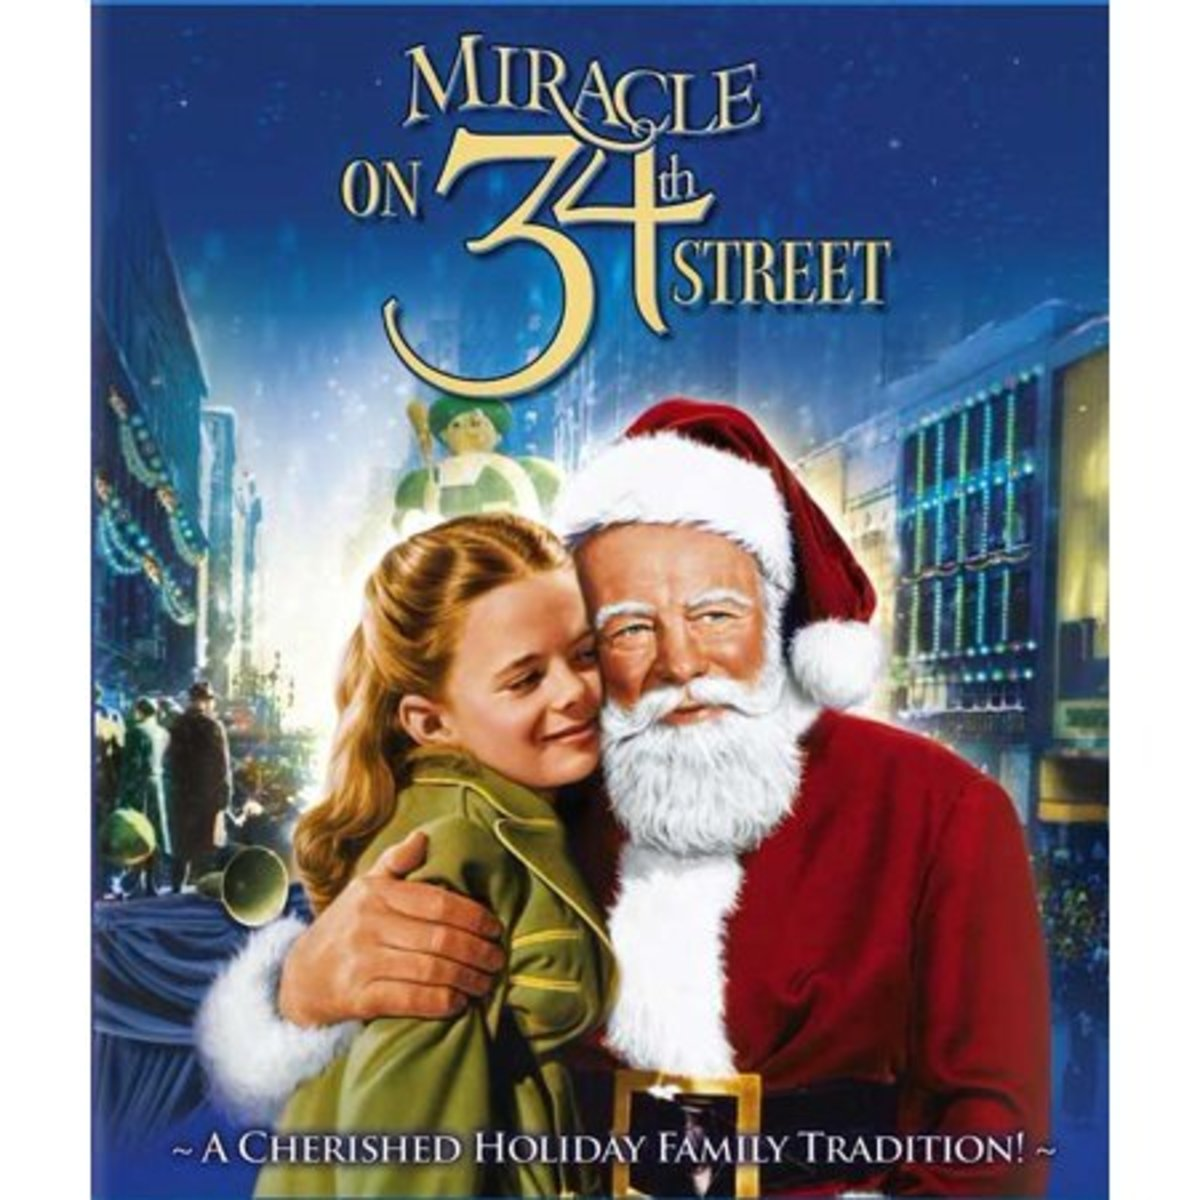 'Miracle on 34th Street' (1947) Will Make You Believe in Santa Again